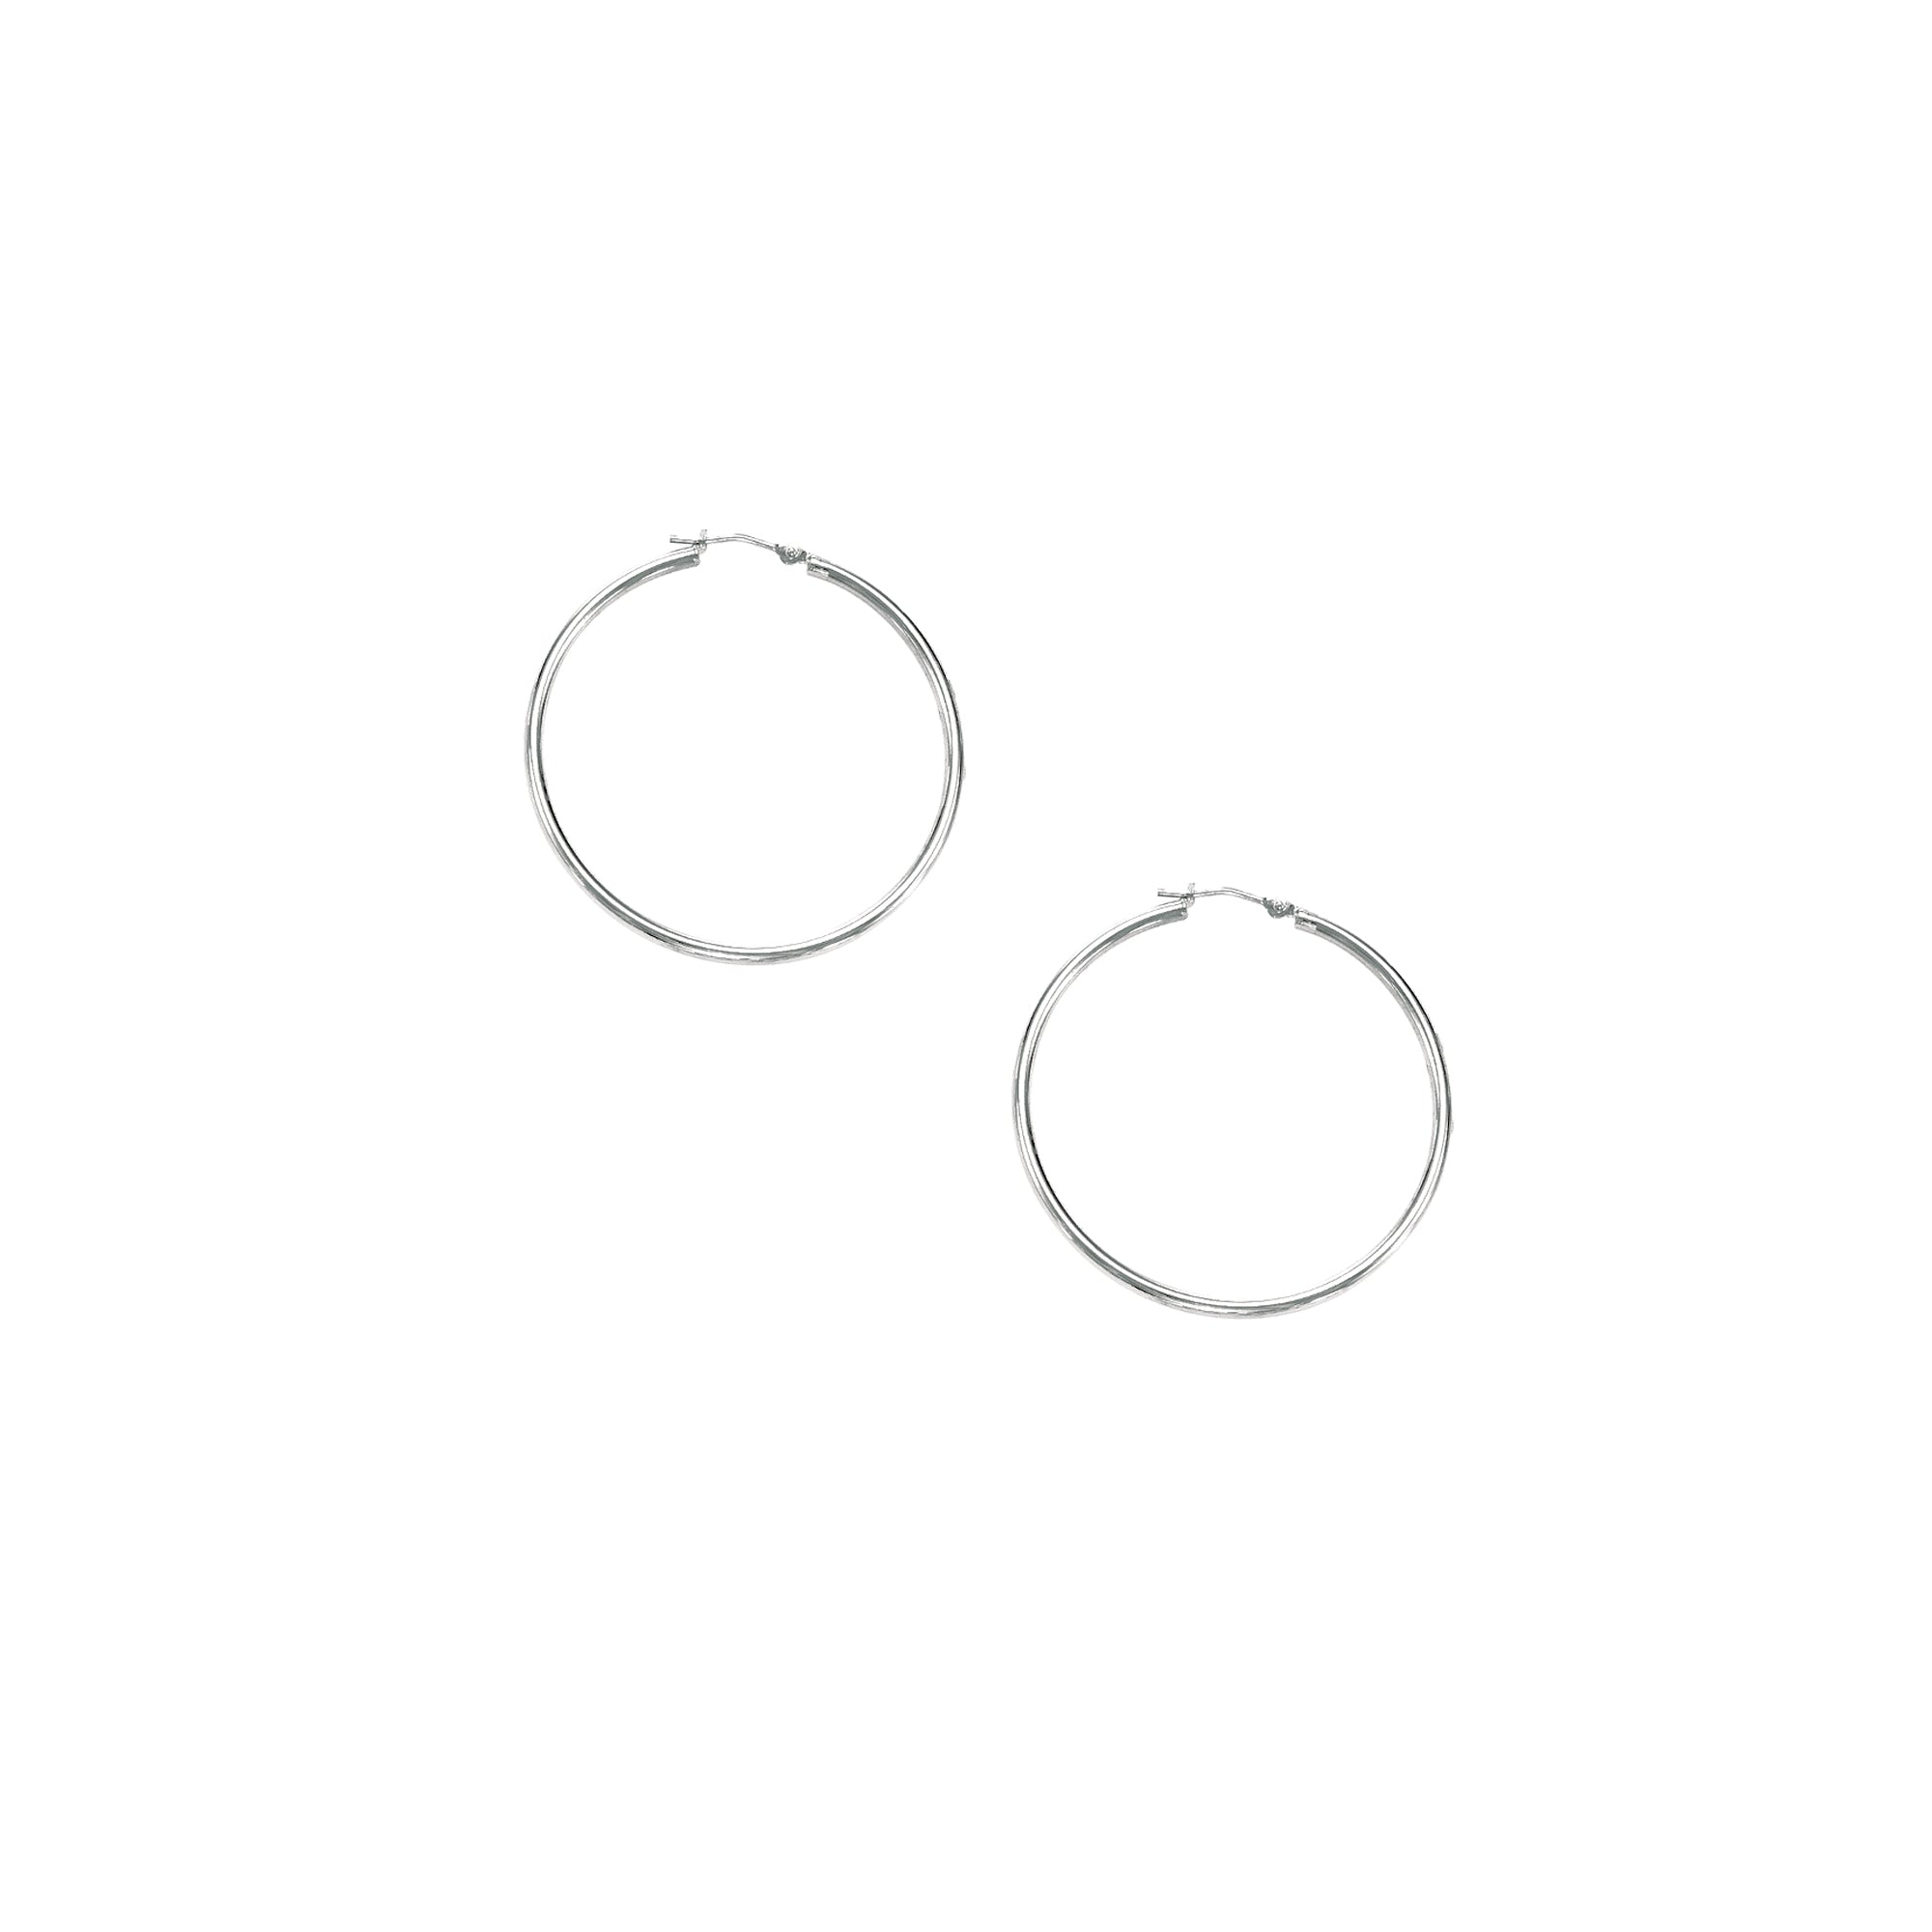 10K Gold 1.5x30mm Hoop Earring